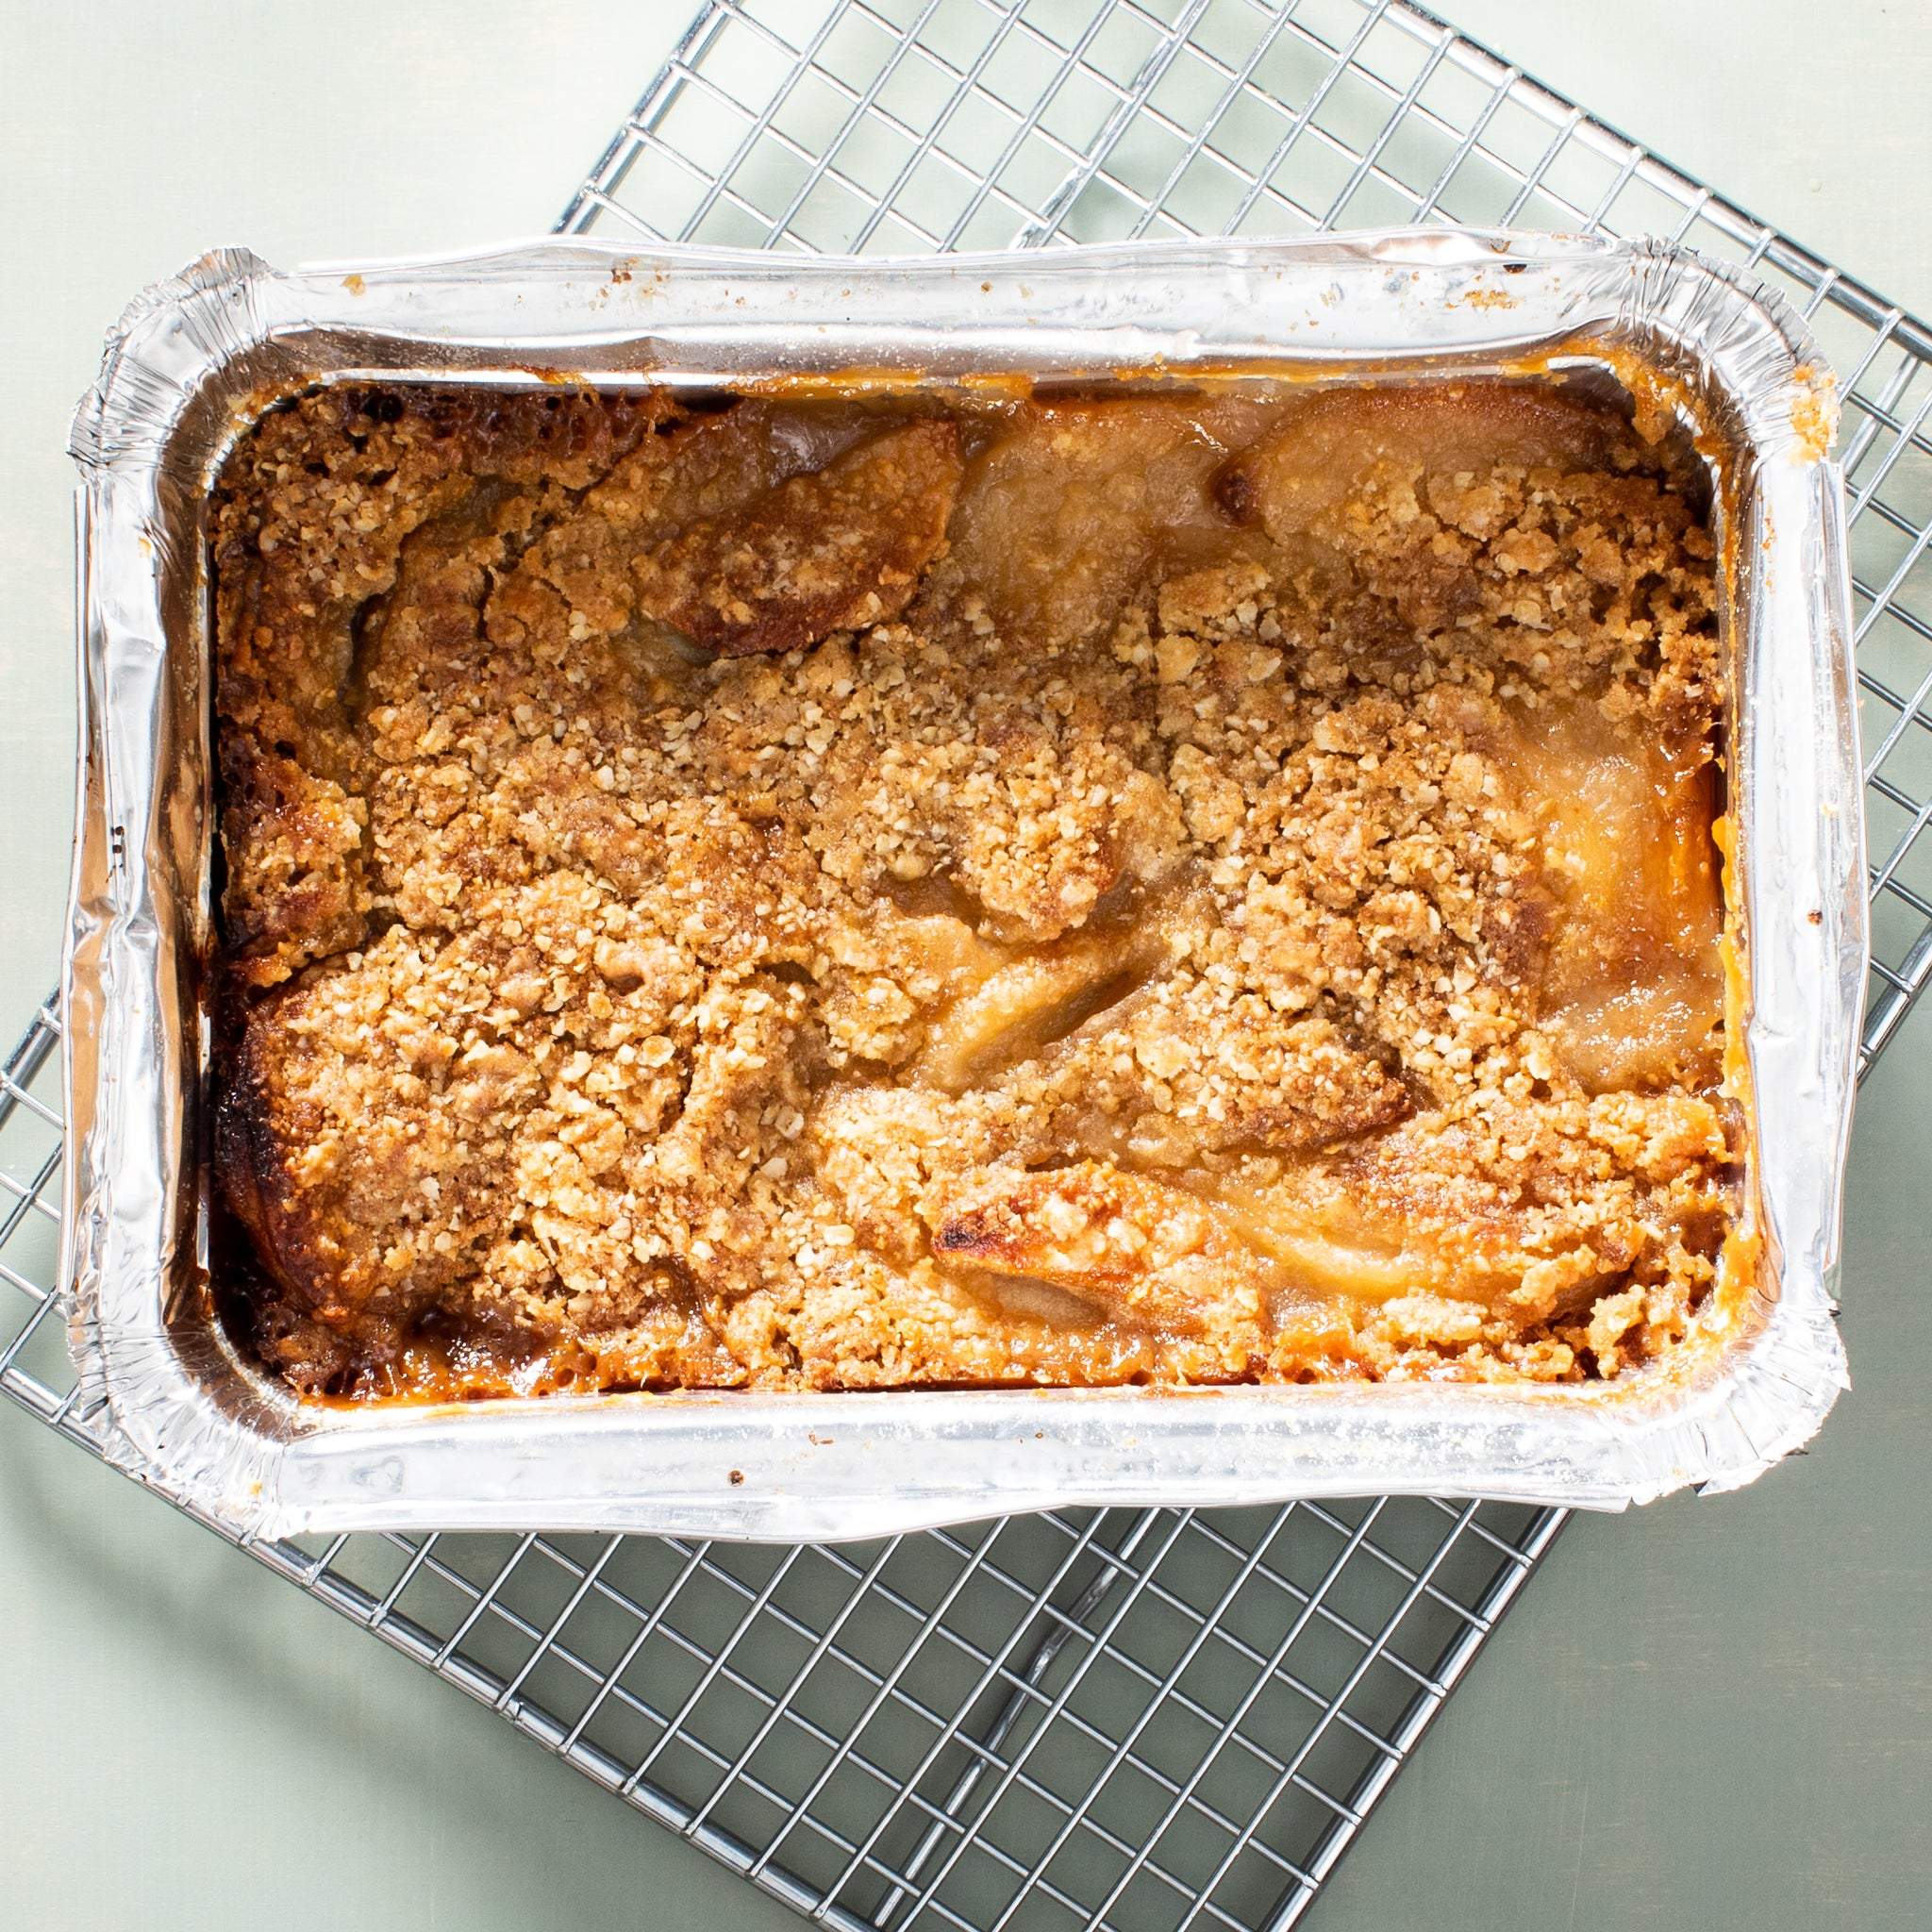 Apple + Pear Caramel Crumble